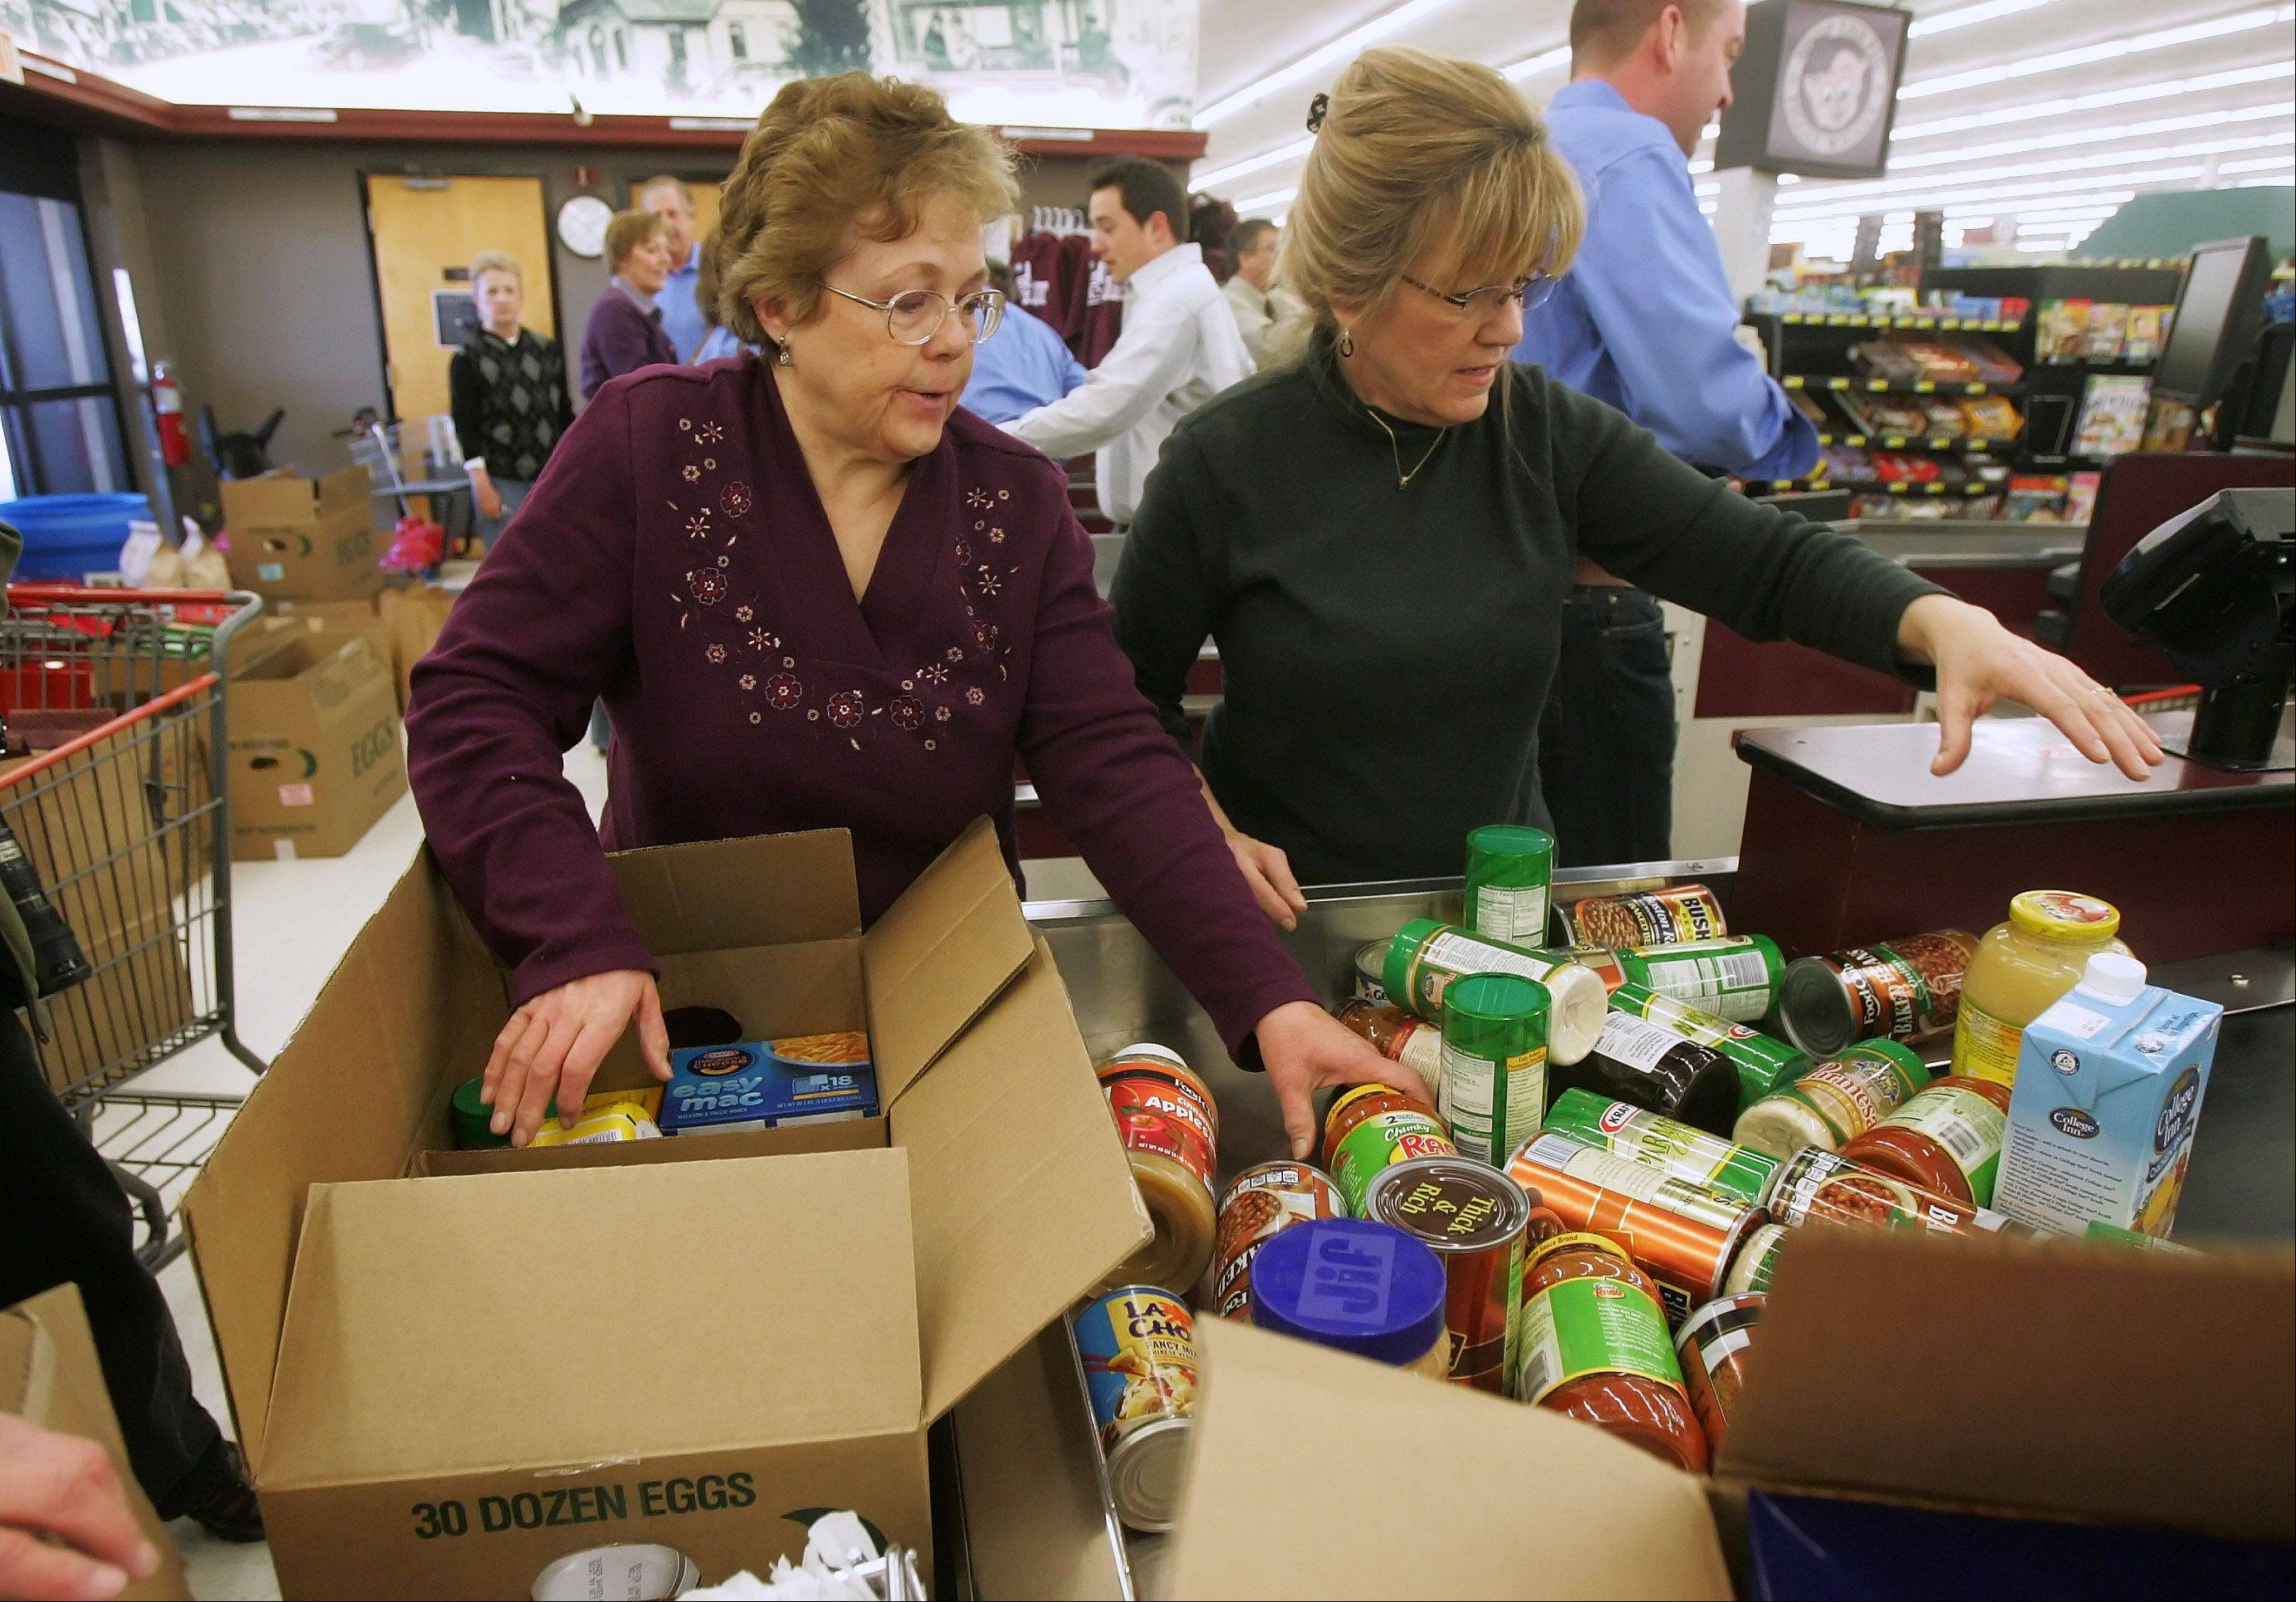 Volunteer Lynn Doolittle, left, helps state Sen. Melinda Bush box food she collected during the 15th Annual Race for Hunger Monday at the Piggly Wiggly grocery store in Antioch. The race was sponsored by the Lake County Farm Bureau to raise awareness of Food Check Out Week and provide goods for local food pantries.